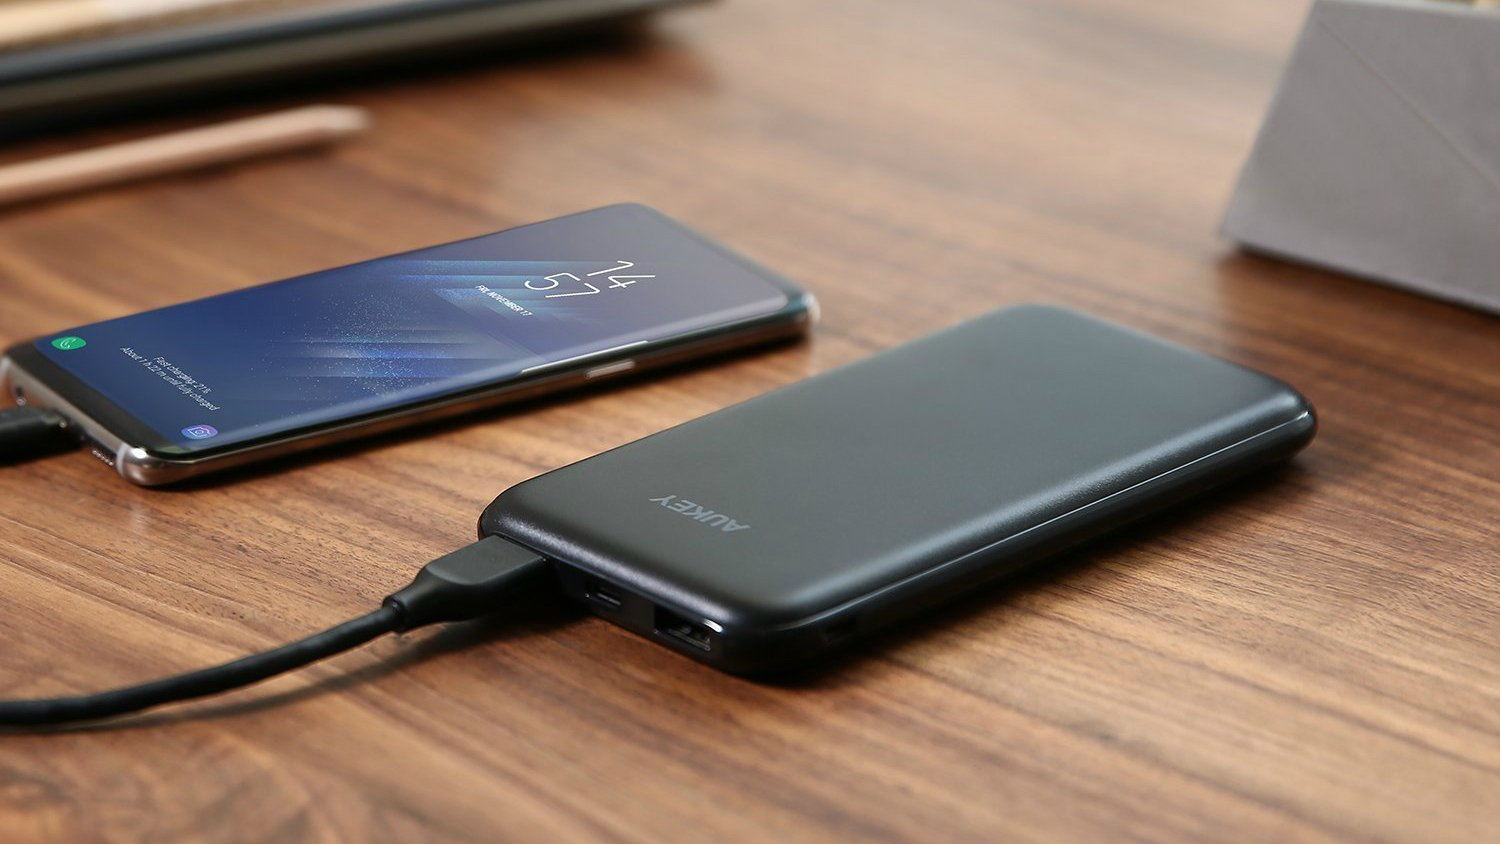 Best Power Banks In The Uk 2018 Top Portable Chargers You Can Samsung Galaxy S9 Free Anker Powerbank Mah 10000 Black If Youve Got A Recent Smartphone With Usb Type C Connection This Is Bank To Pack 10000mah Battery Good Charge Most Flagship Phones